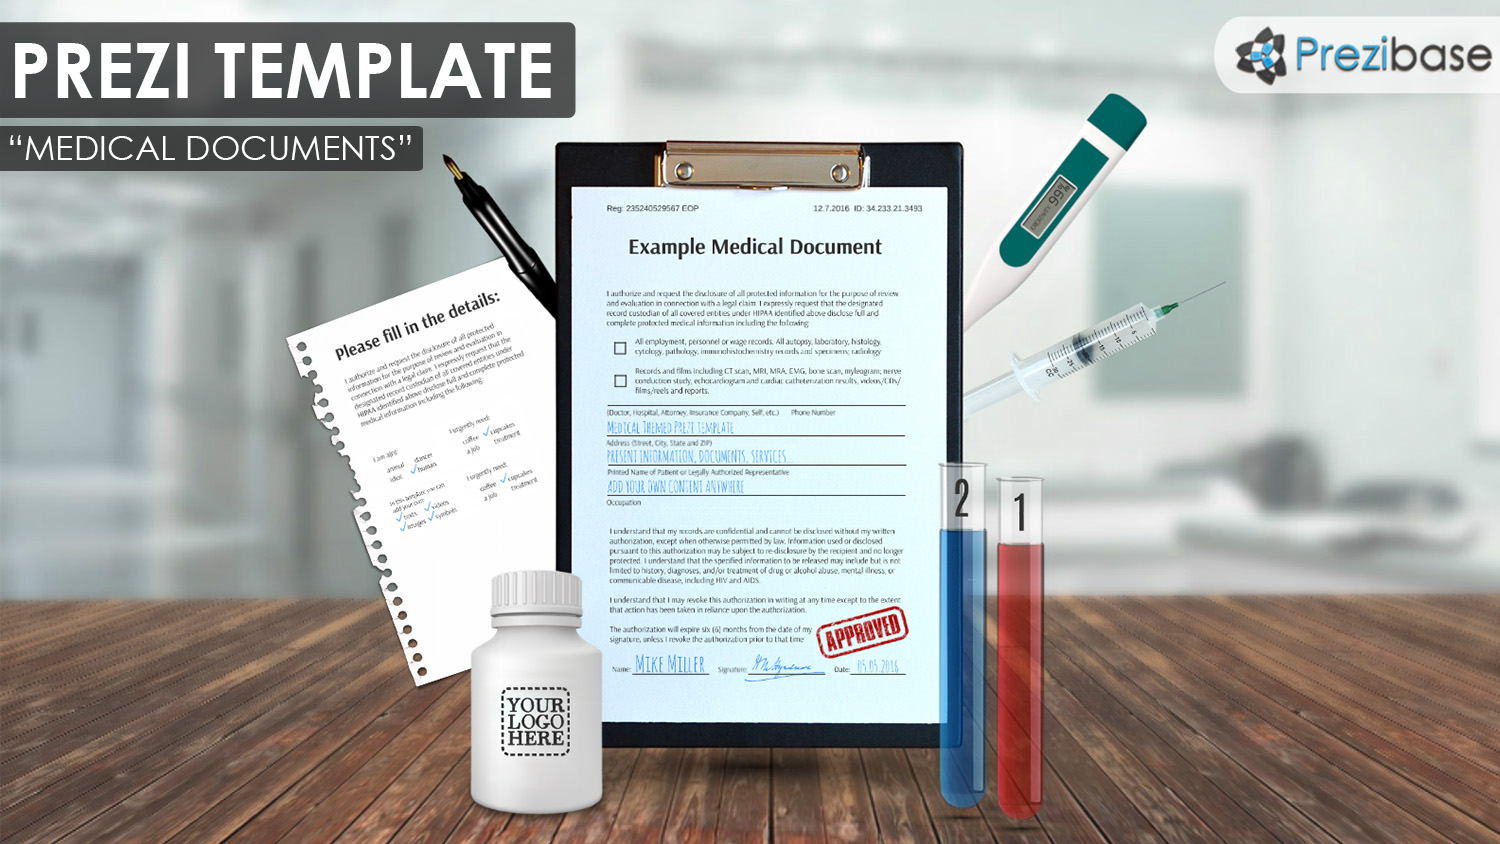 Medical documents drugs research prezi template